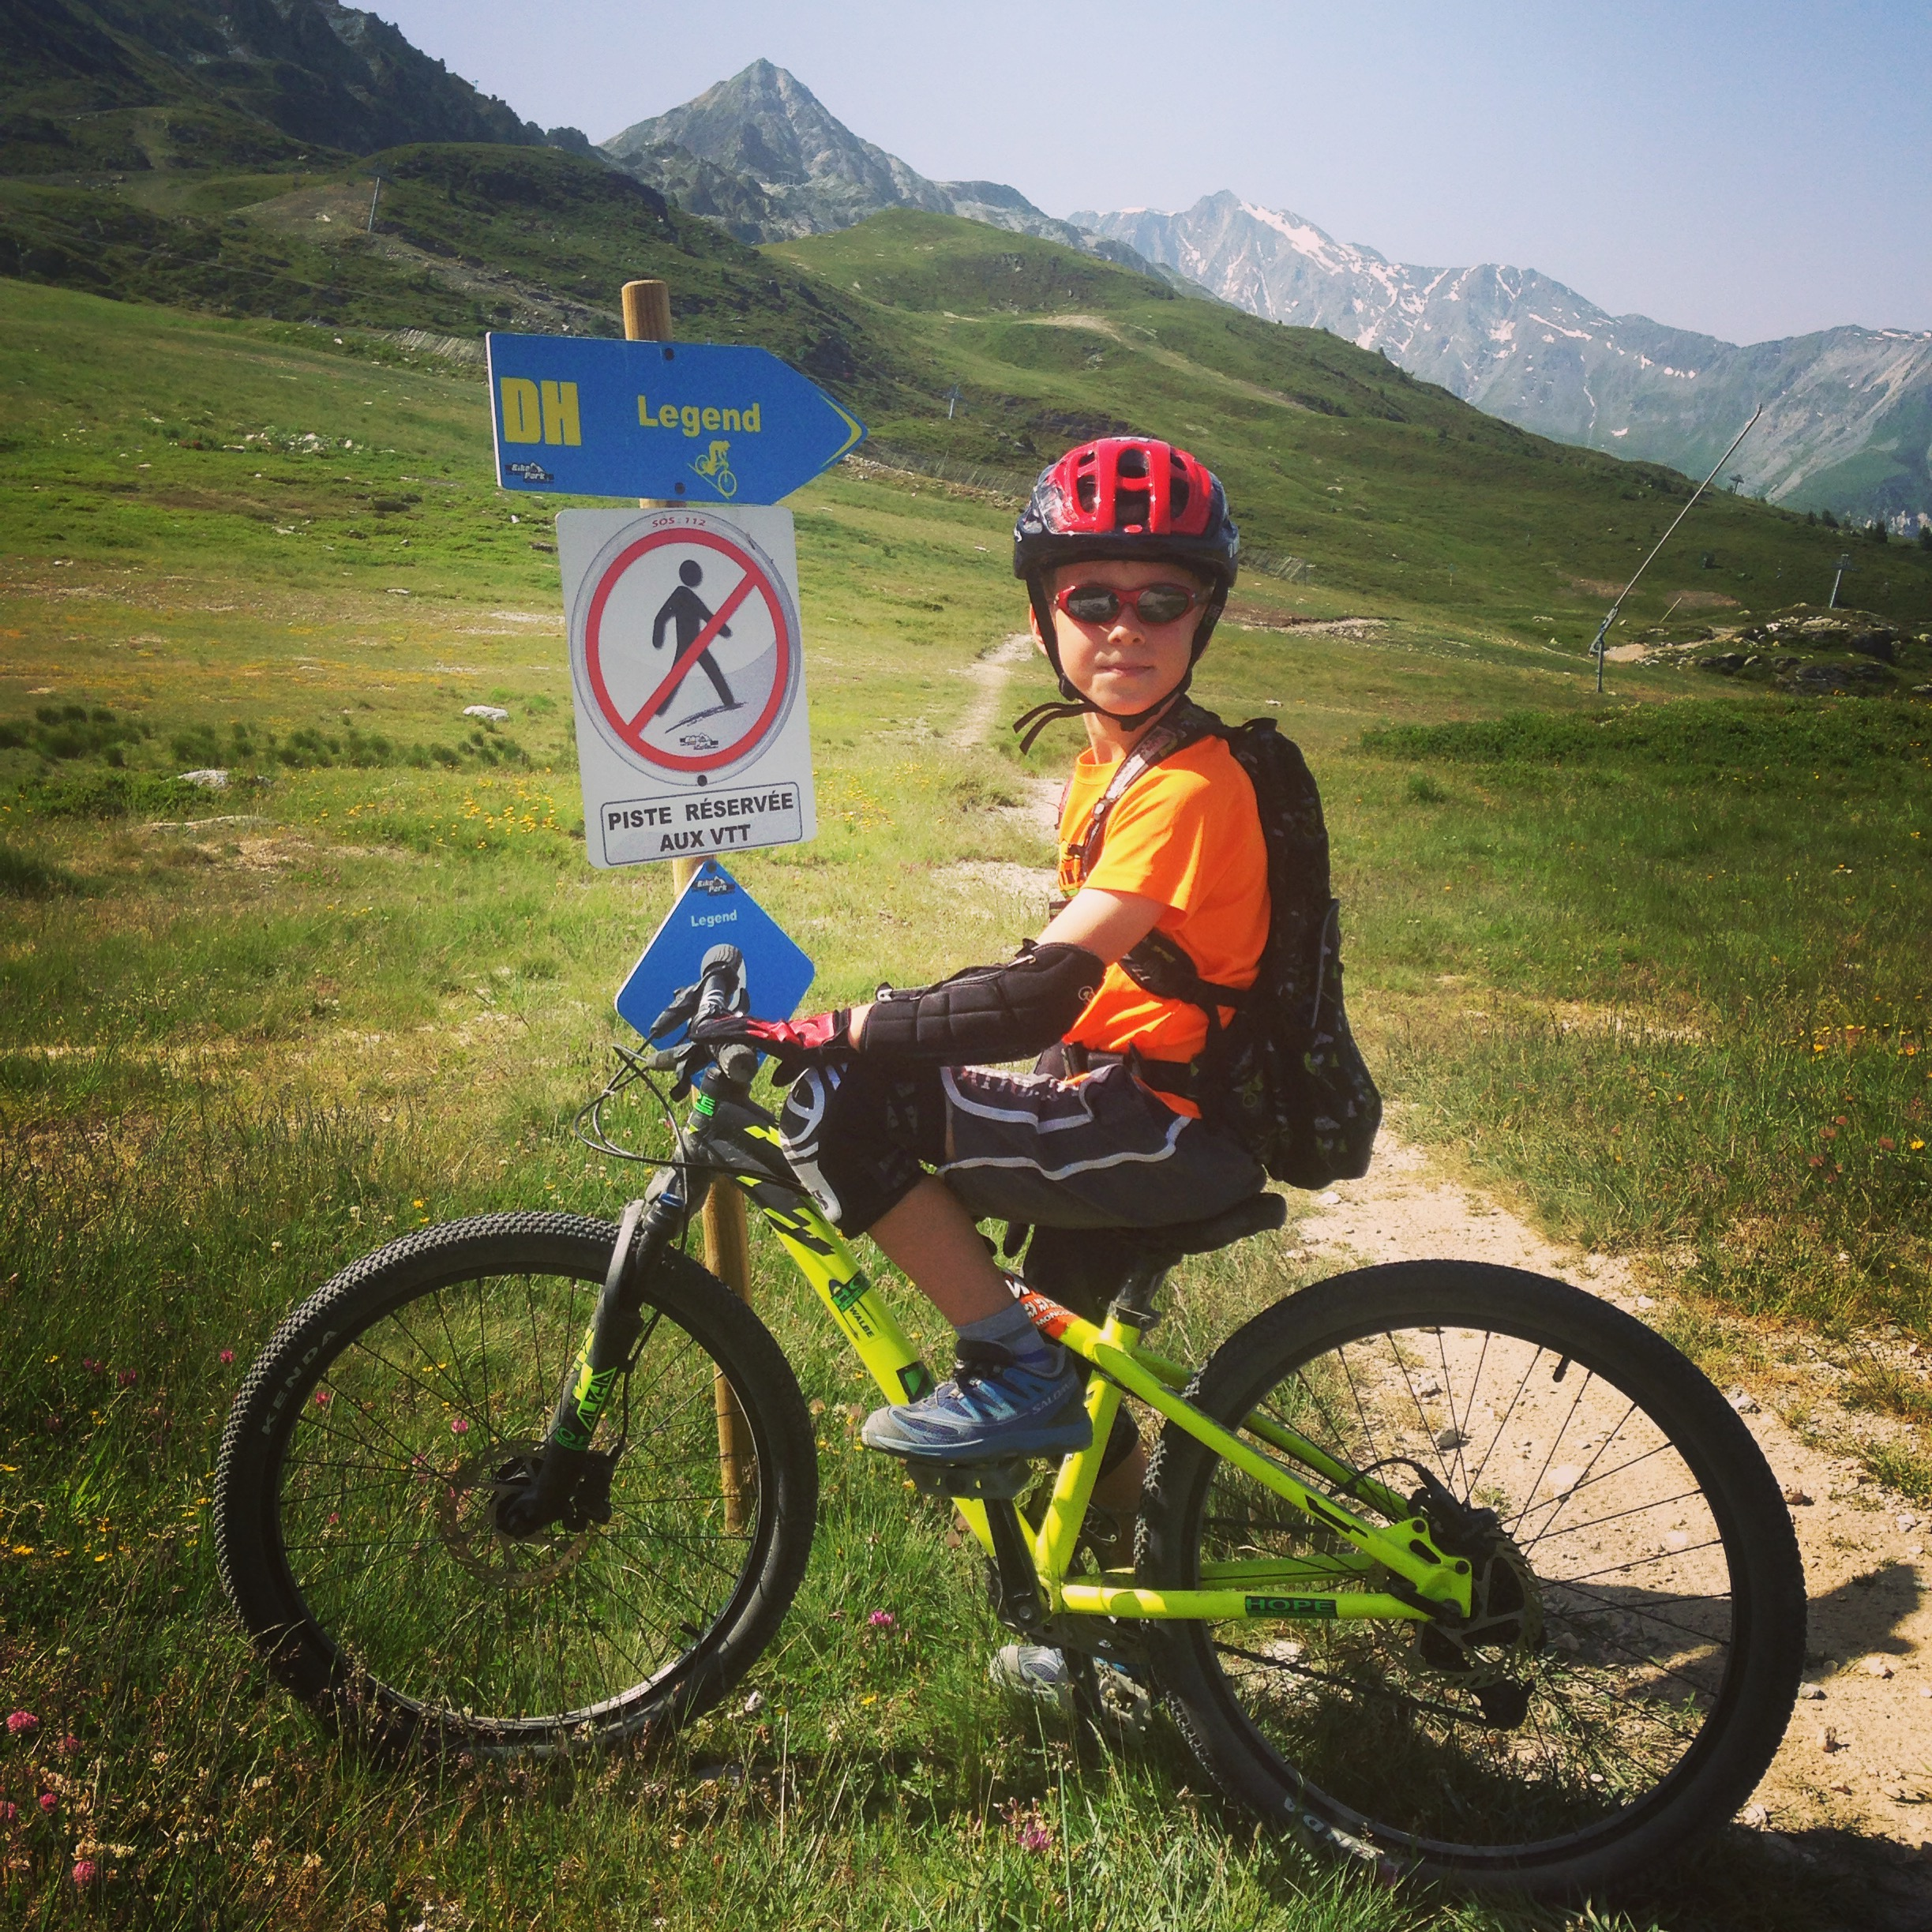 hitting Les Arcs during a mountain biking holiday in the Alps